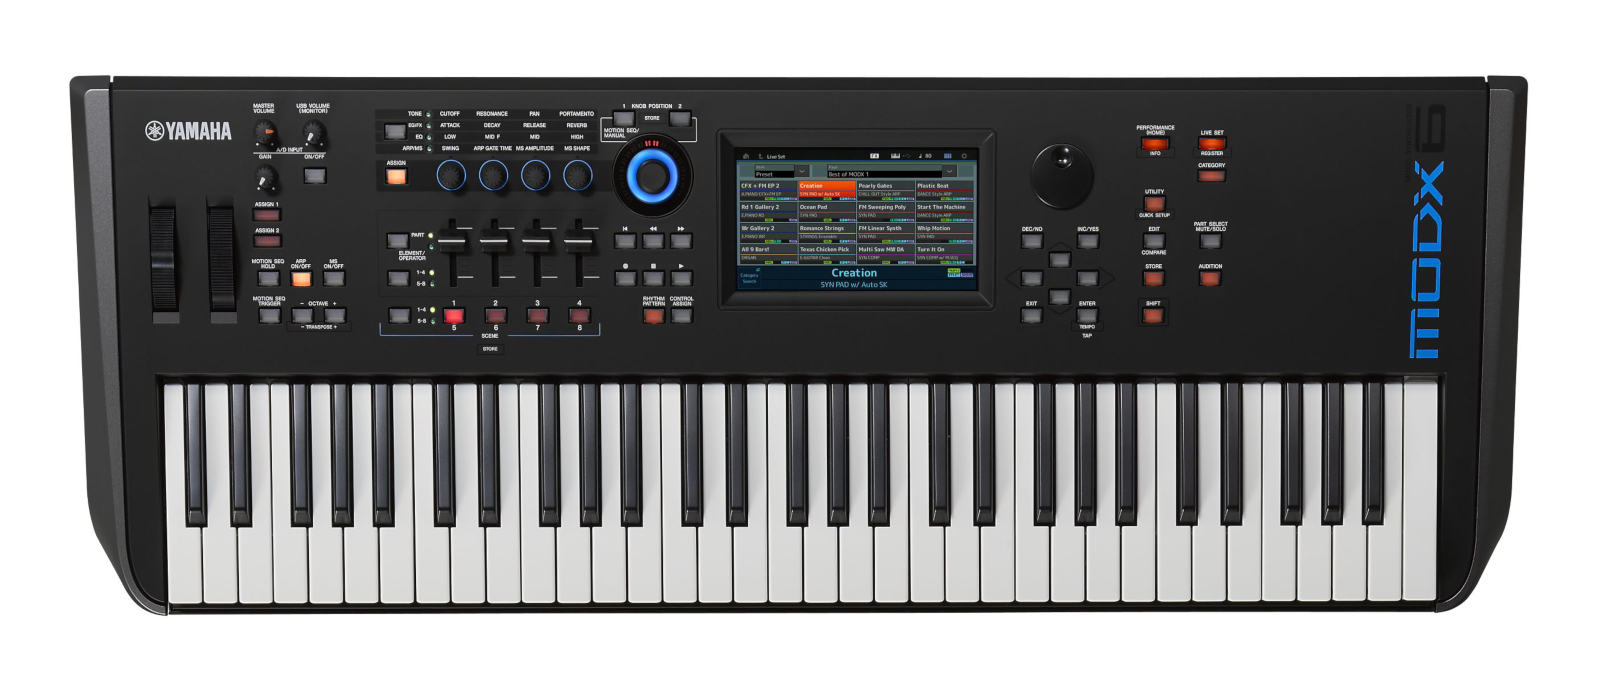 Under a Yamaha MODX6 61 keyboard light weight synthesizer / MODX release  commemorative campaign!